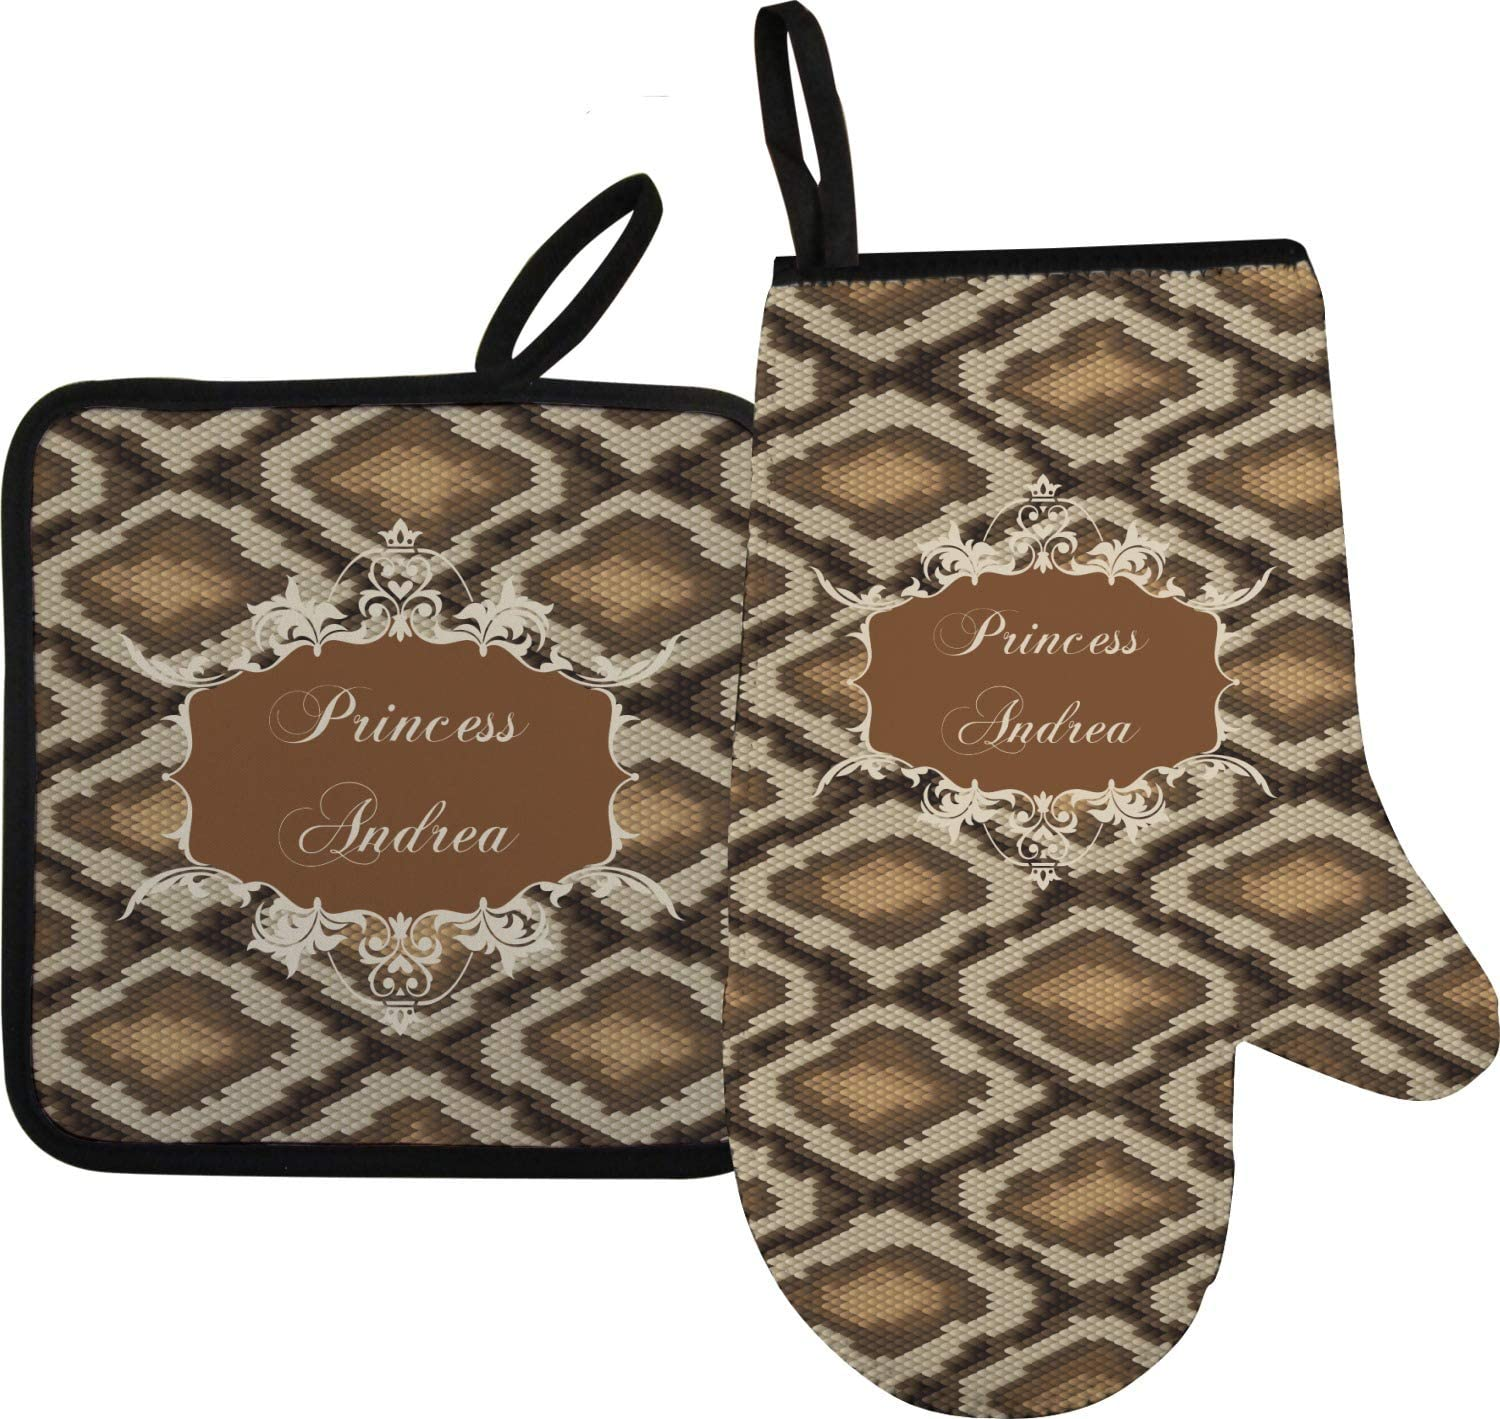 YouCustomizeIt Snake Skin Oven Mitt & Pot Holder (Personalized)